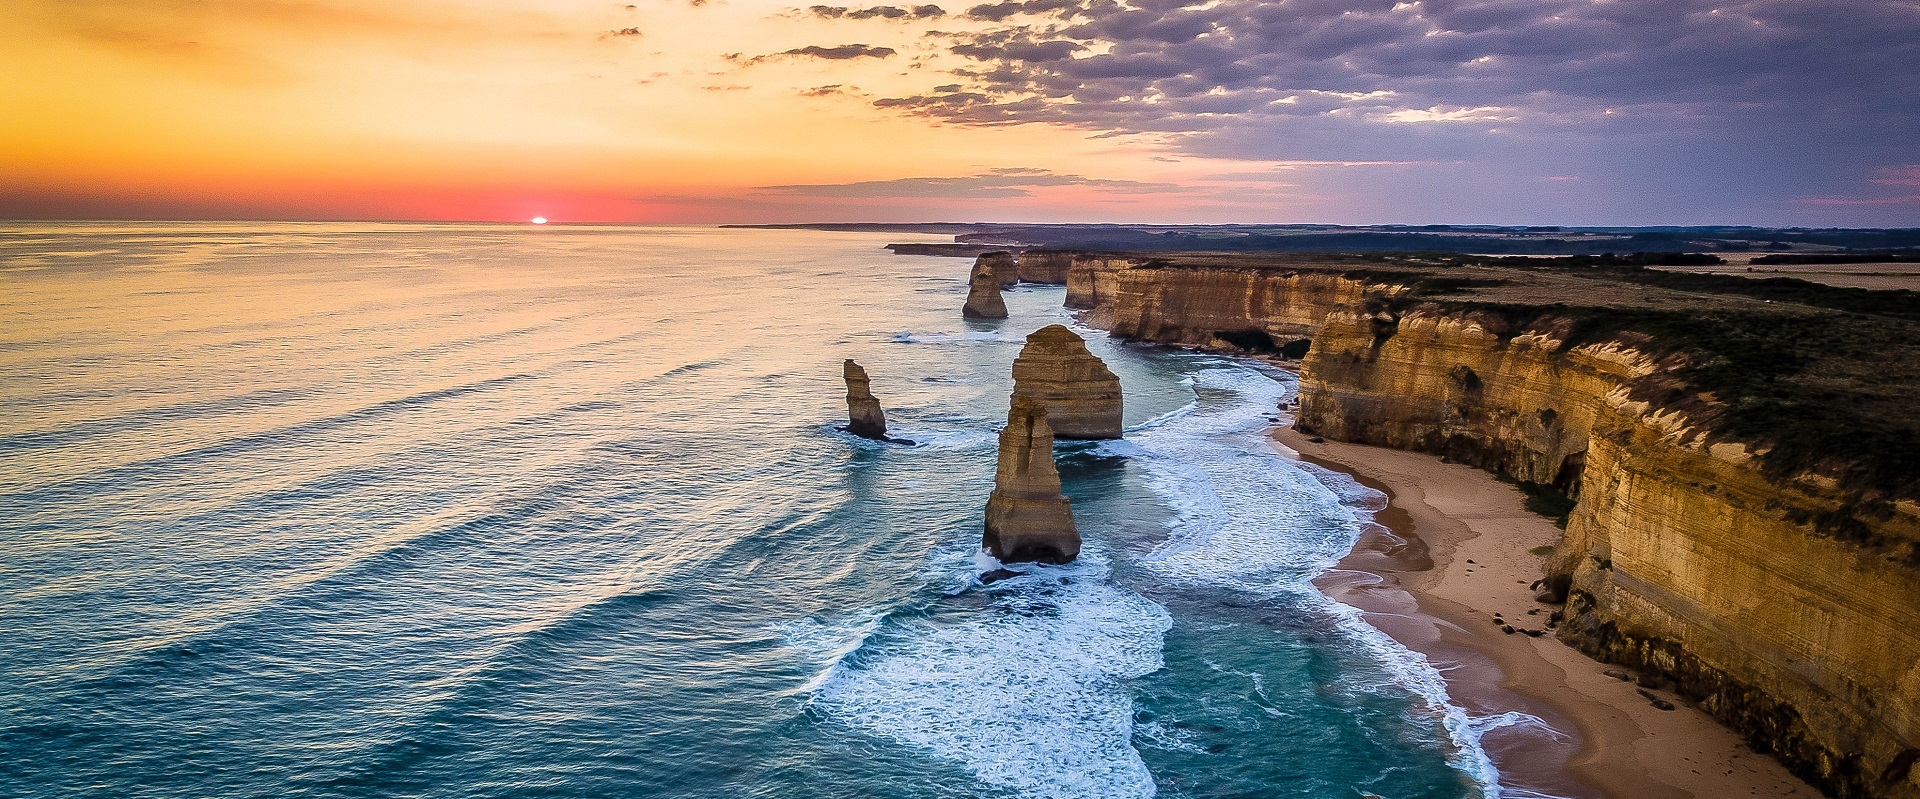 The 12 Apostles, Victoria. One of samotor's 6 great Aussie train destinations.